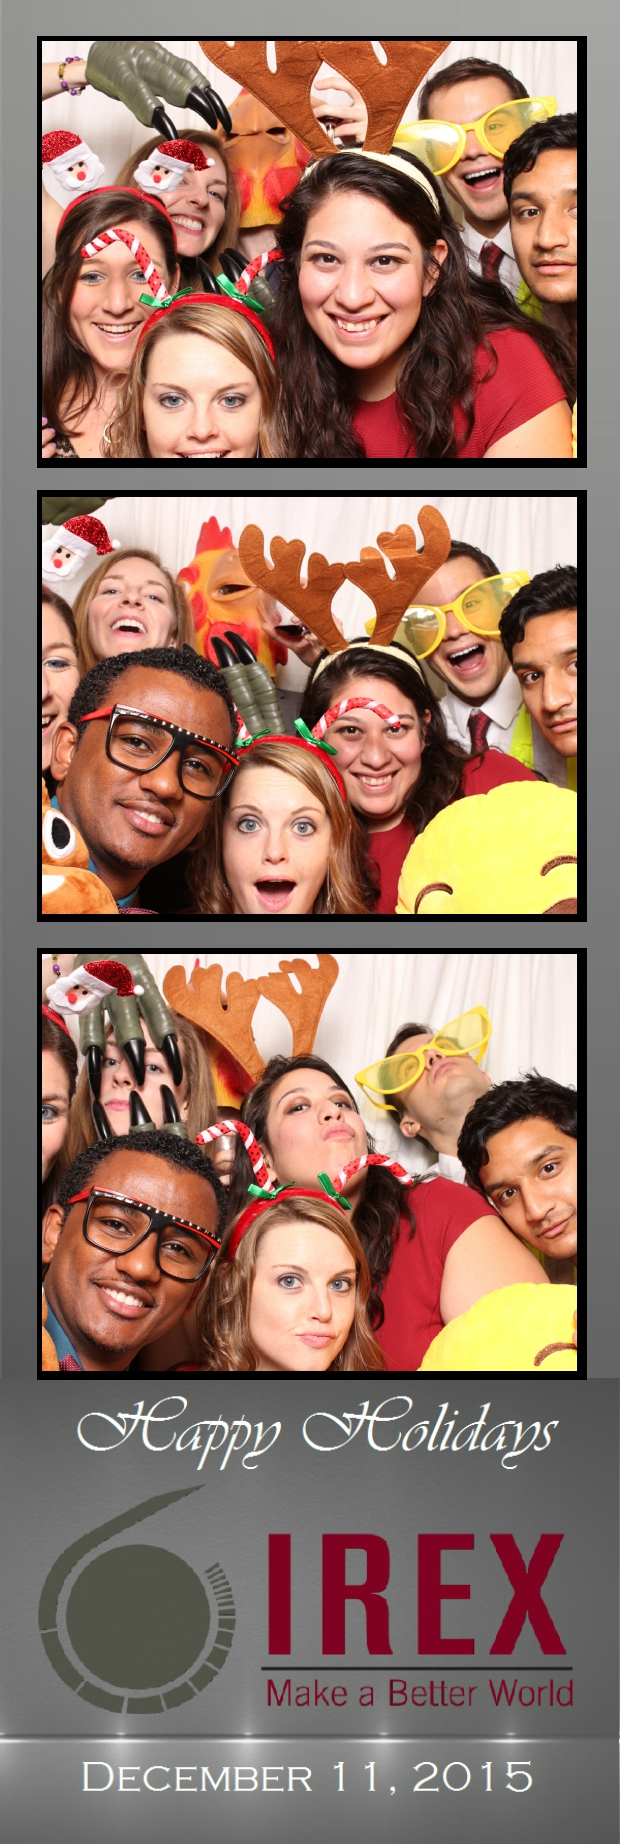 Guest House Events Photo Booth Strips IREX (38).jpg